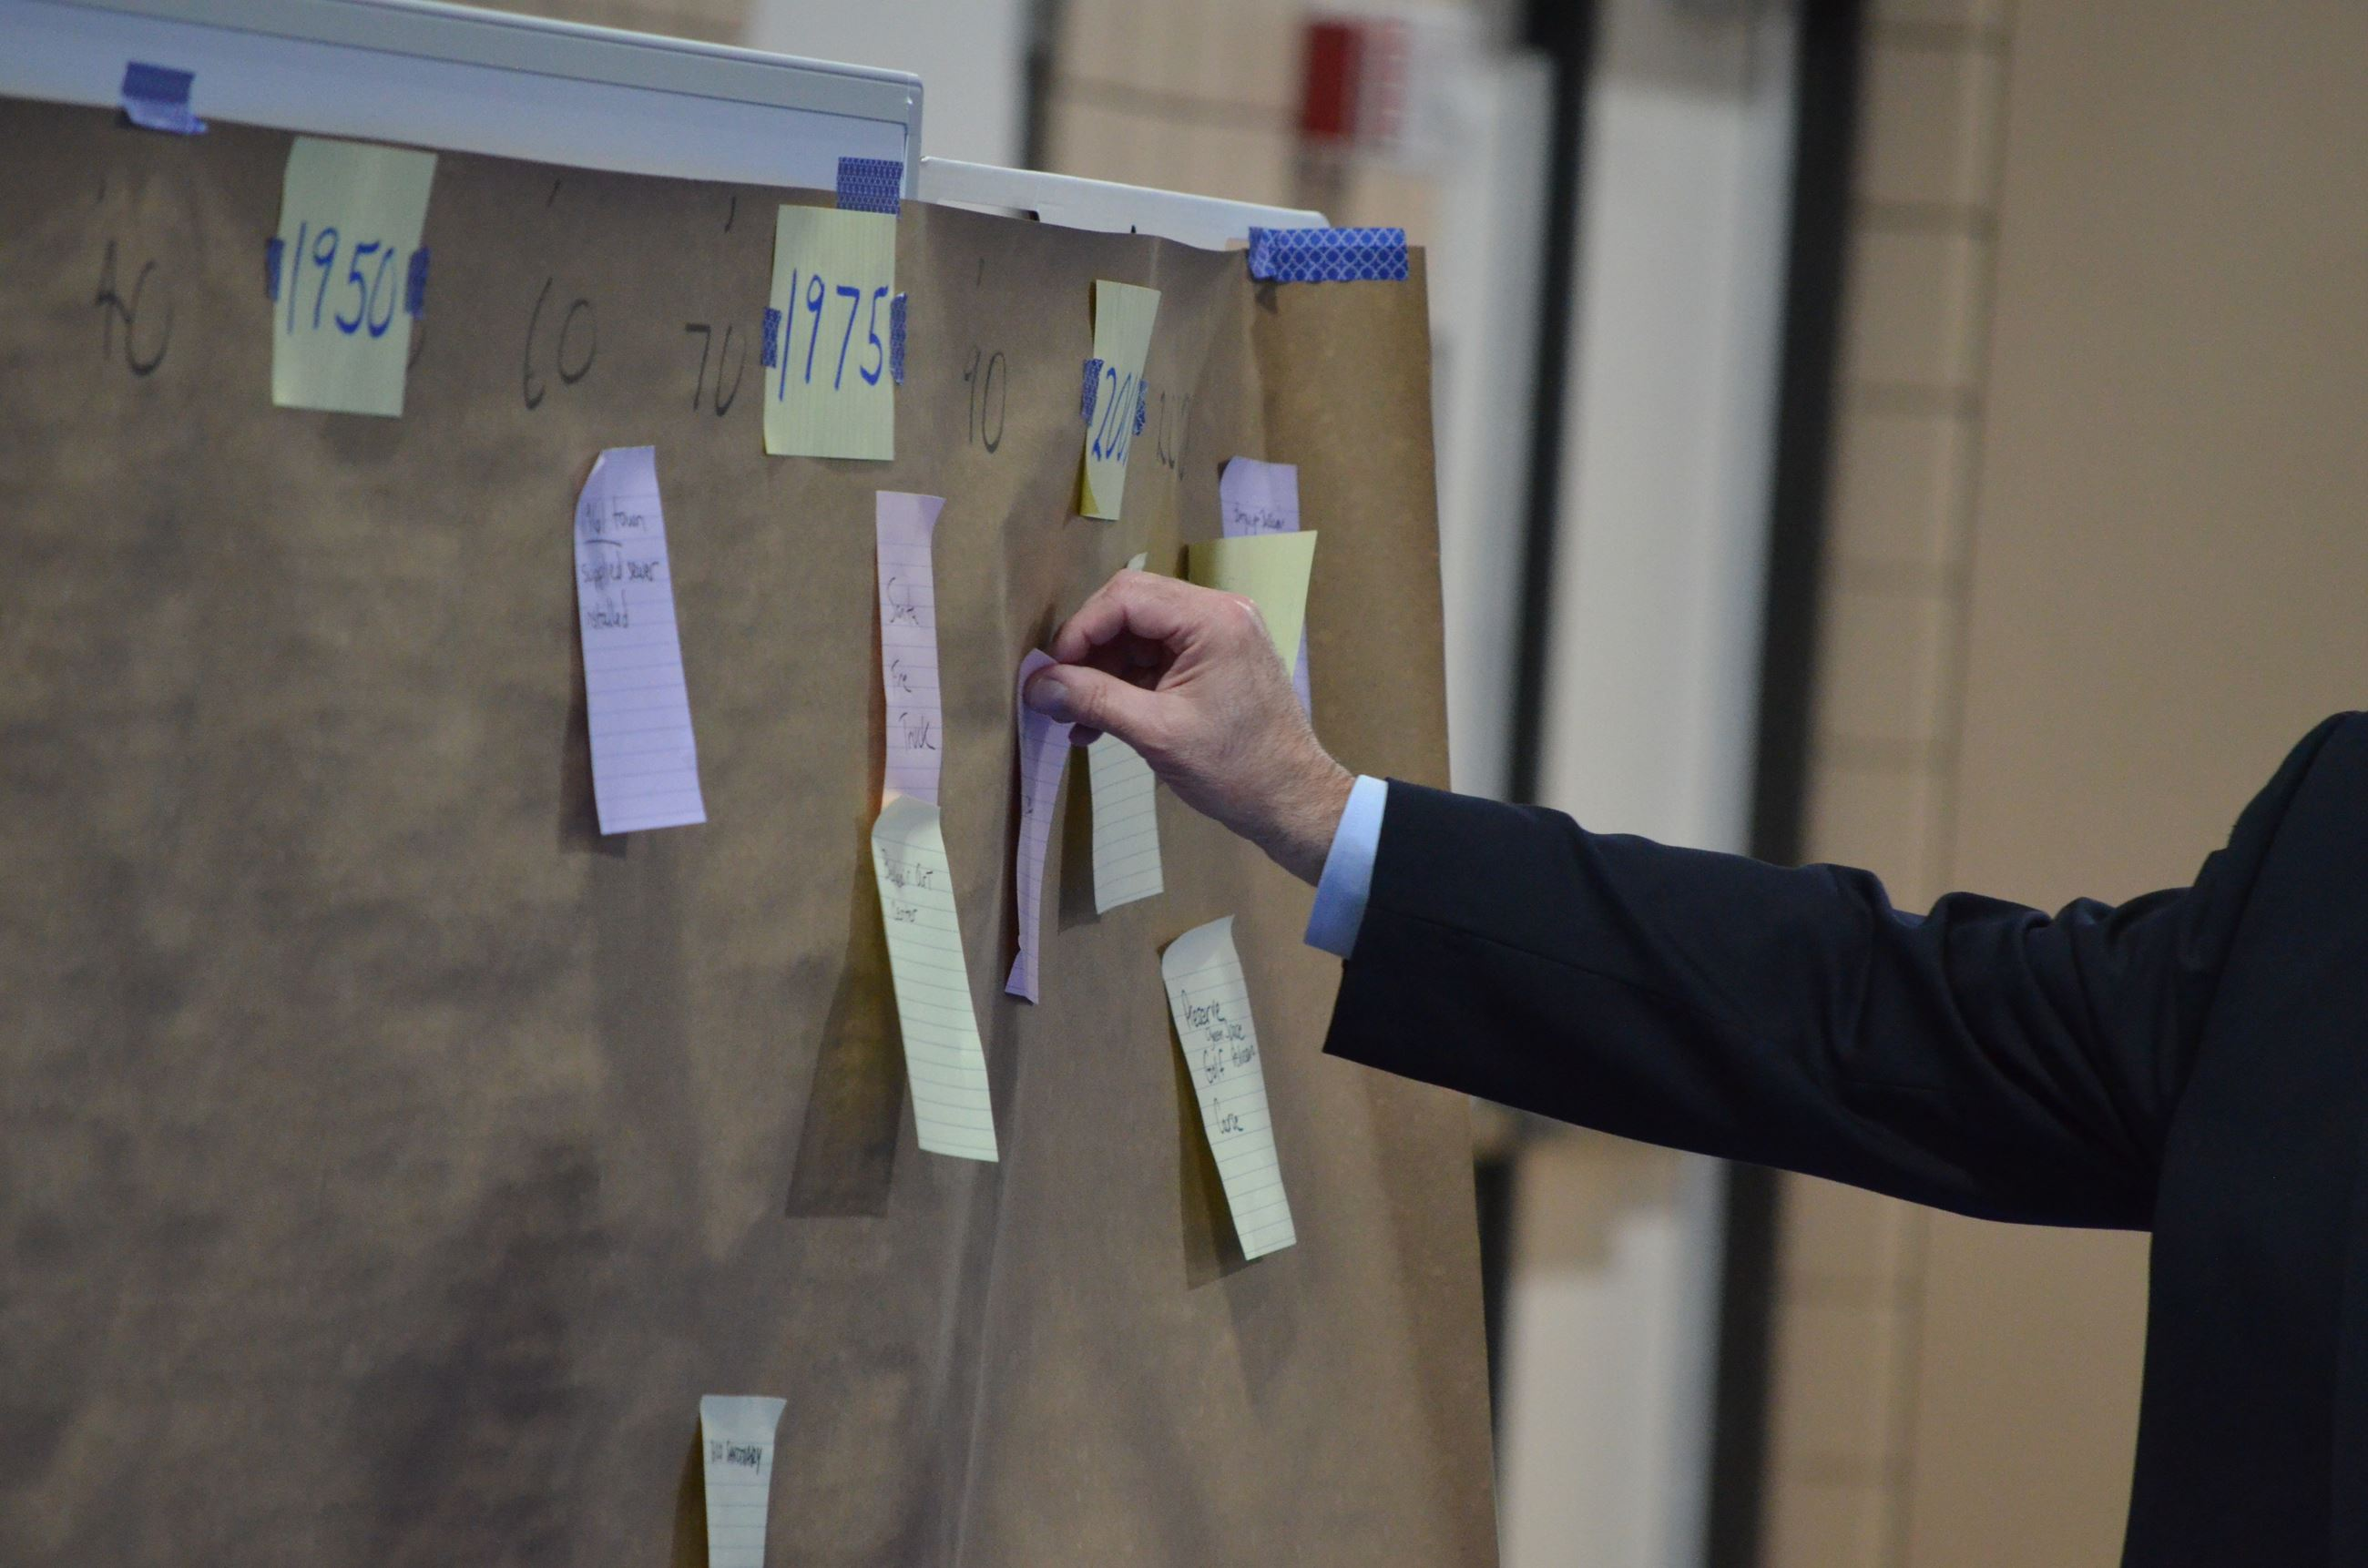 A man places a sticky note onto an interactive timeline of Belleair's history